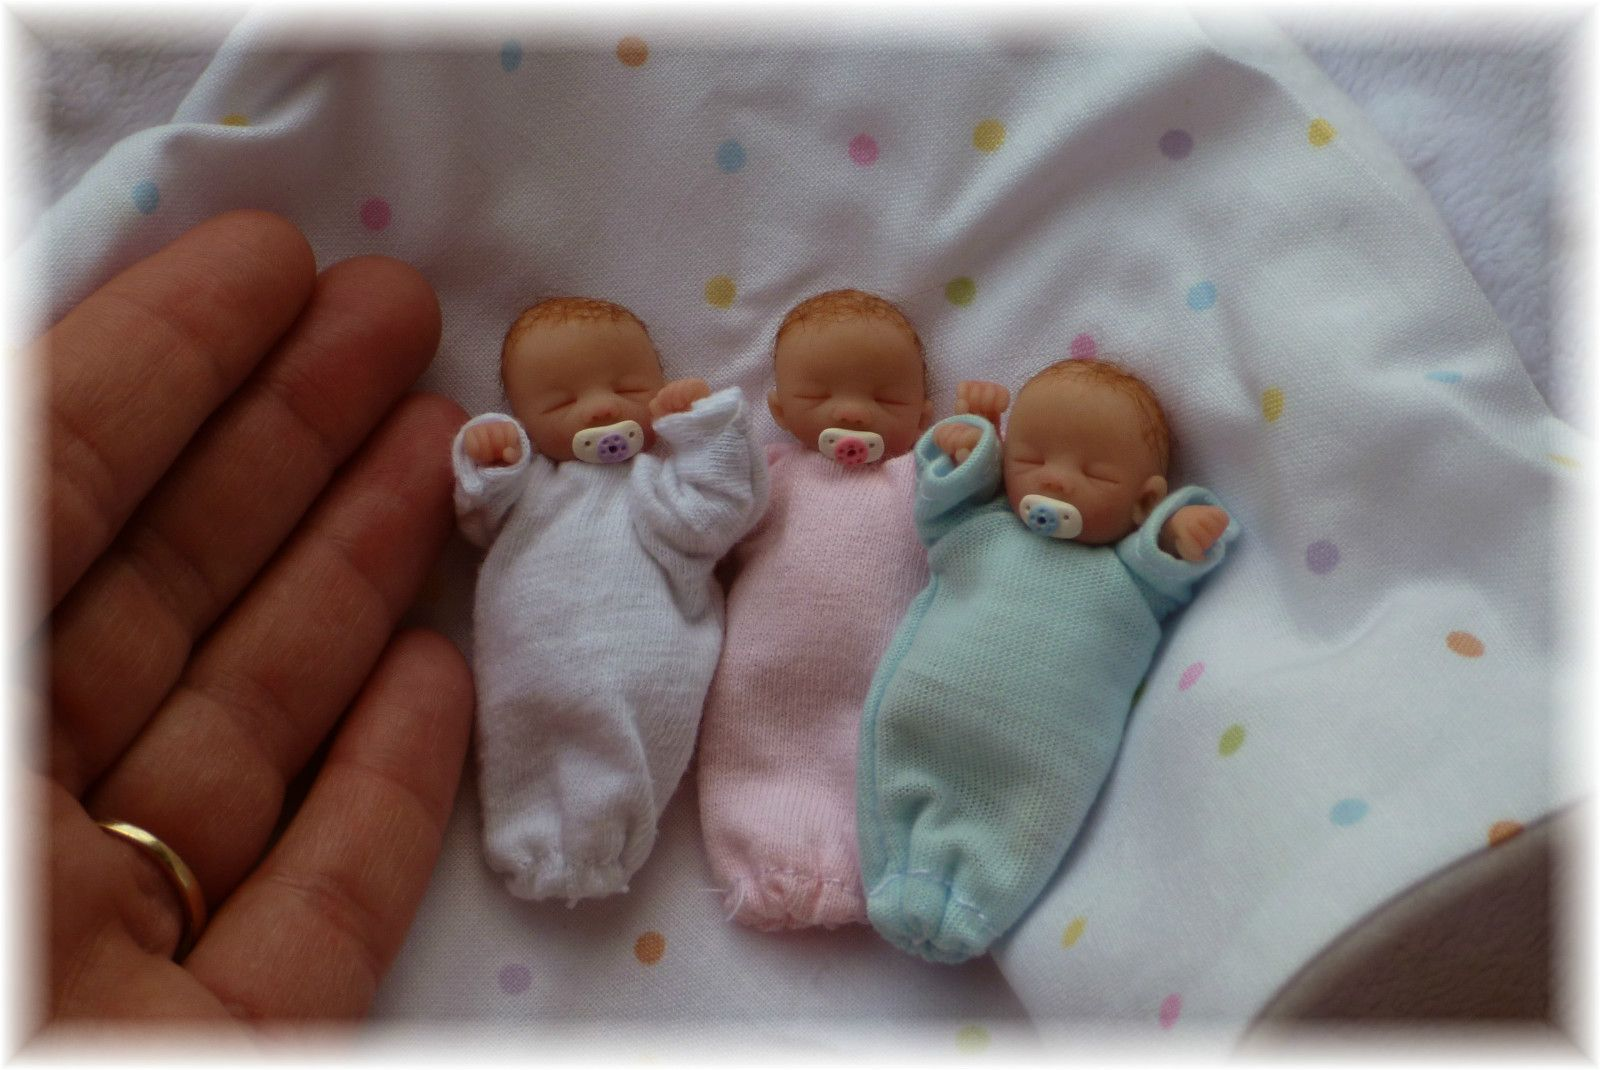 Baby Boy 2 Ooak By Ursula Blue Dragon Not Included Dollhouse Doll Clothes Real Life Baby Dolls Small Baby Dolls